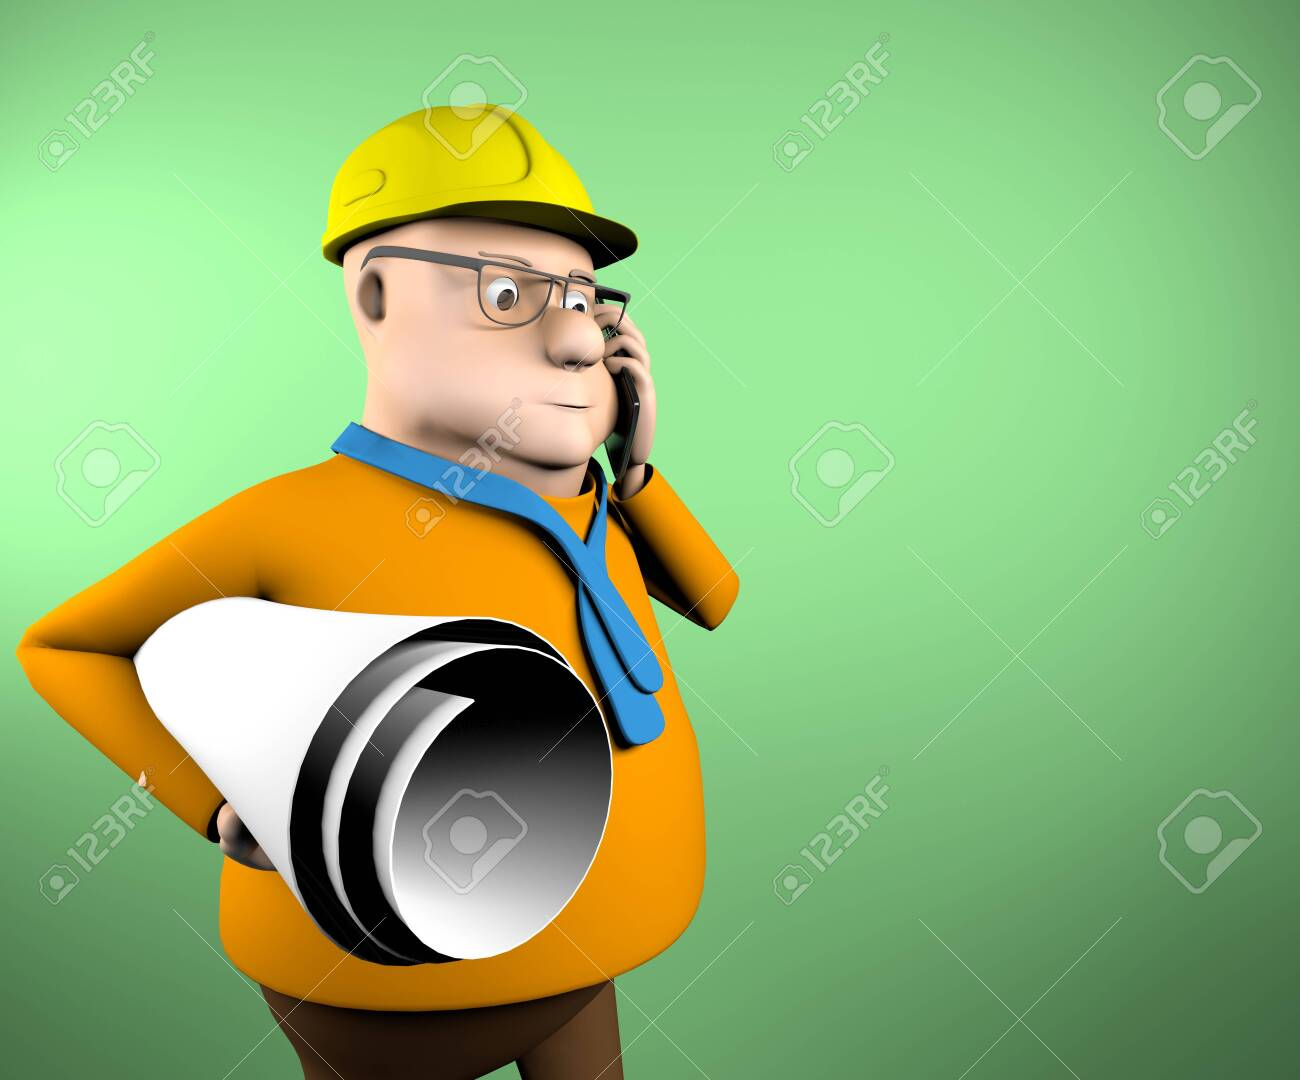 The civil engineer talking on the phone,3d render. - 148007287